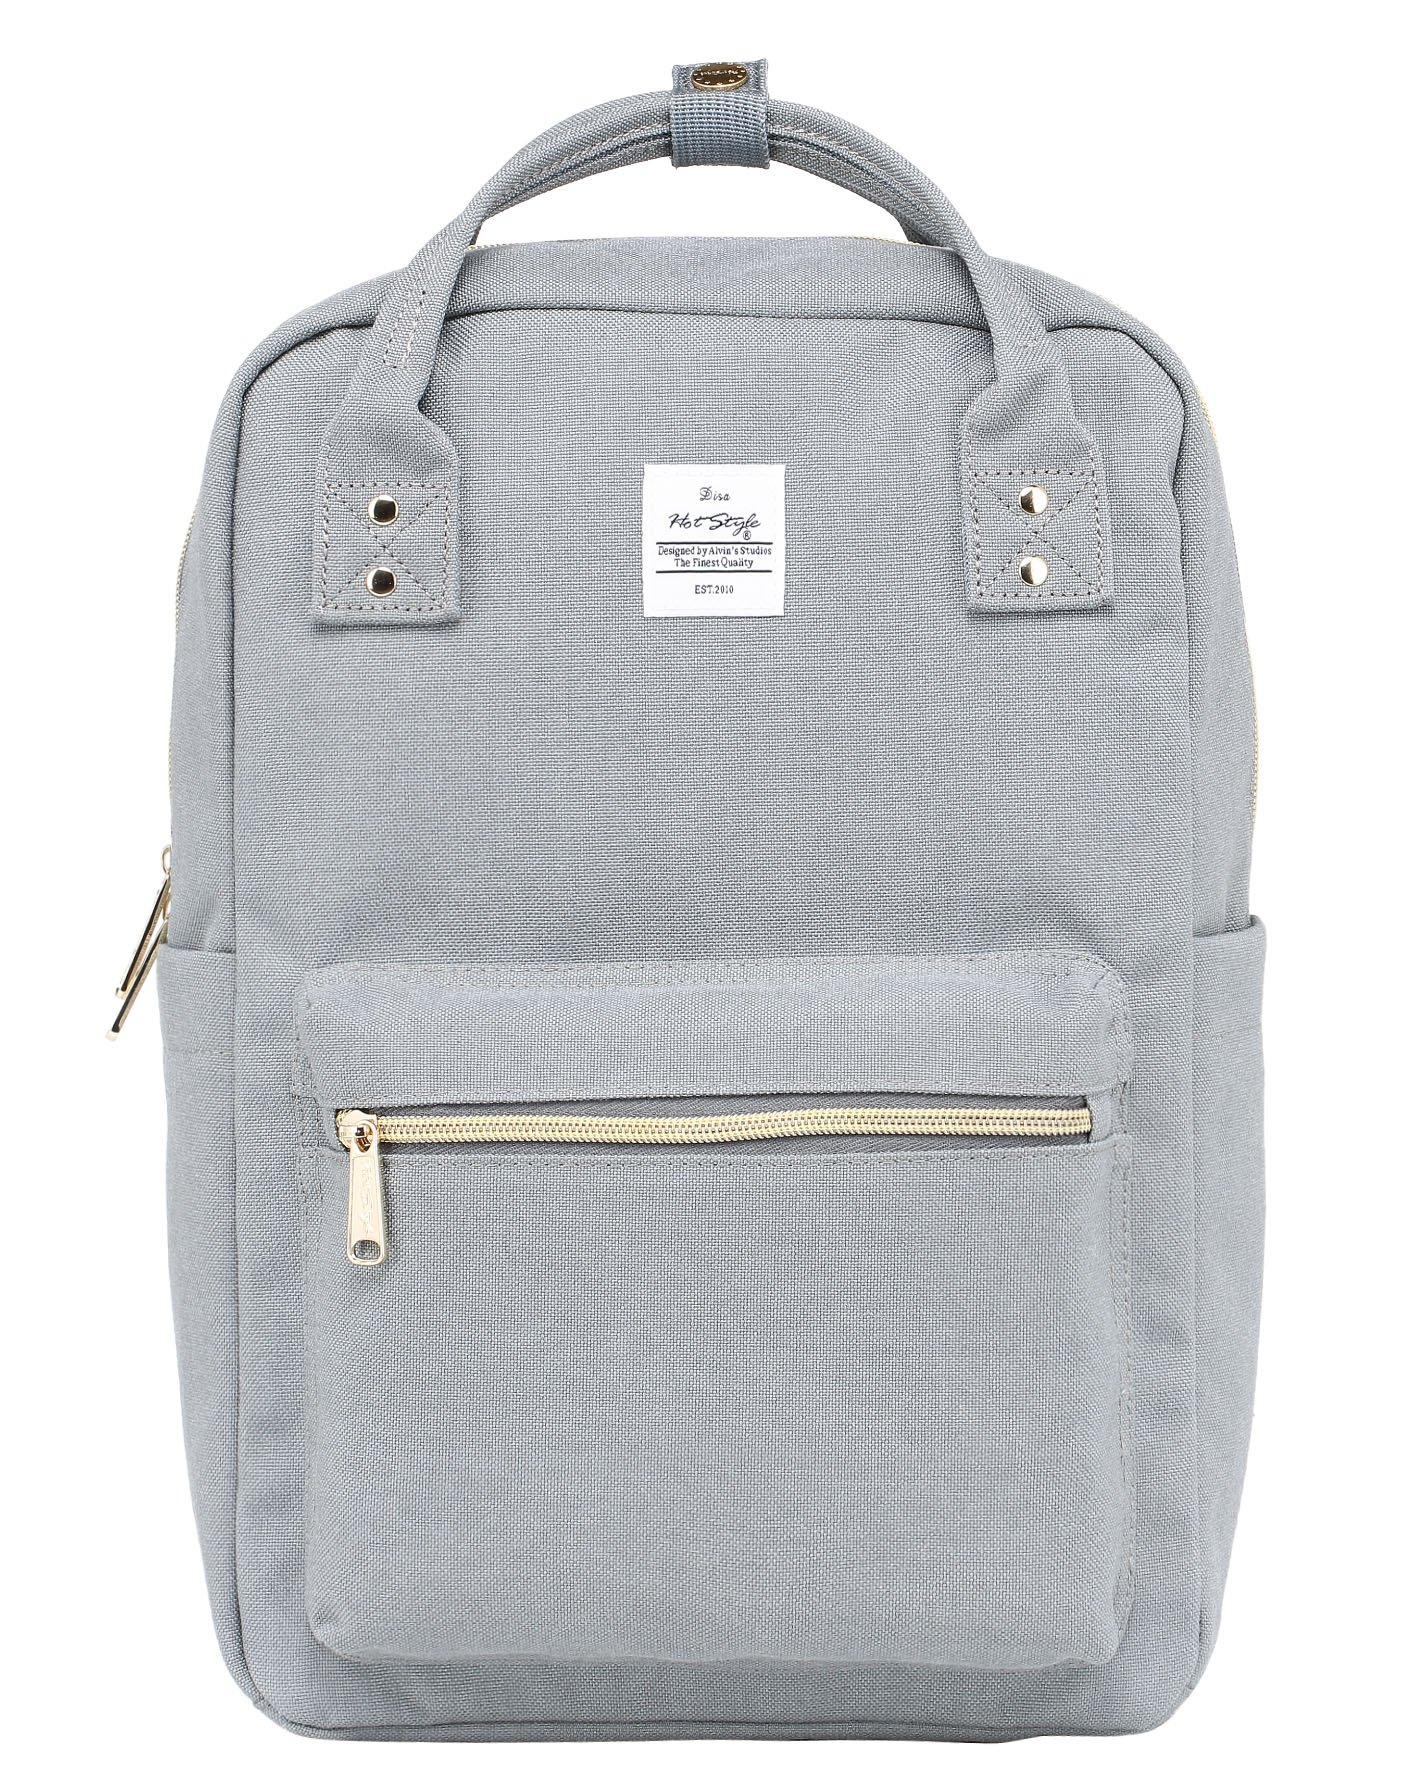 DISA Backpack Purse | Fits 15-inch MacBook | 14.3''x10''x5.5'' | Silver